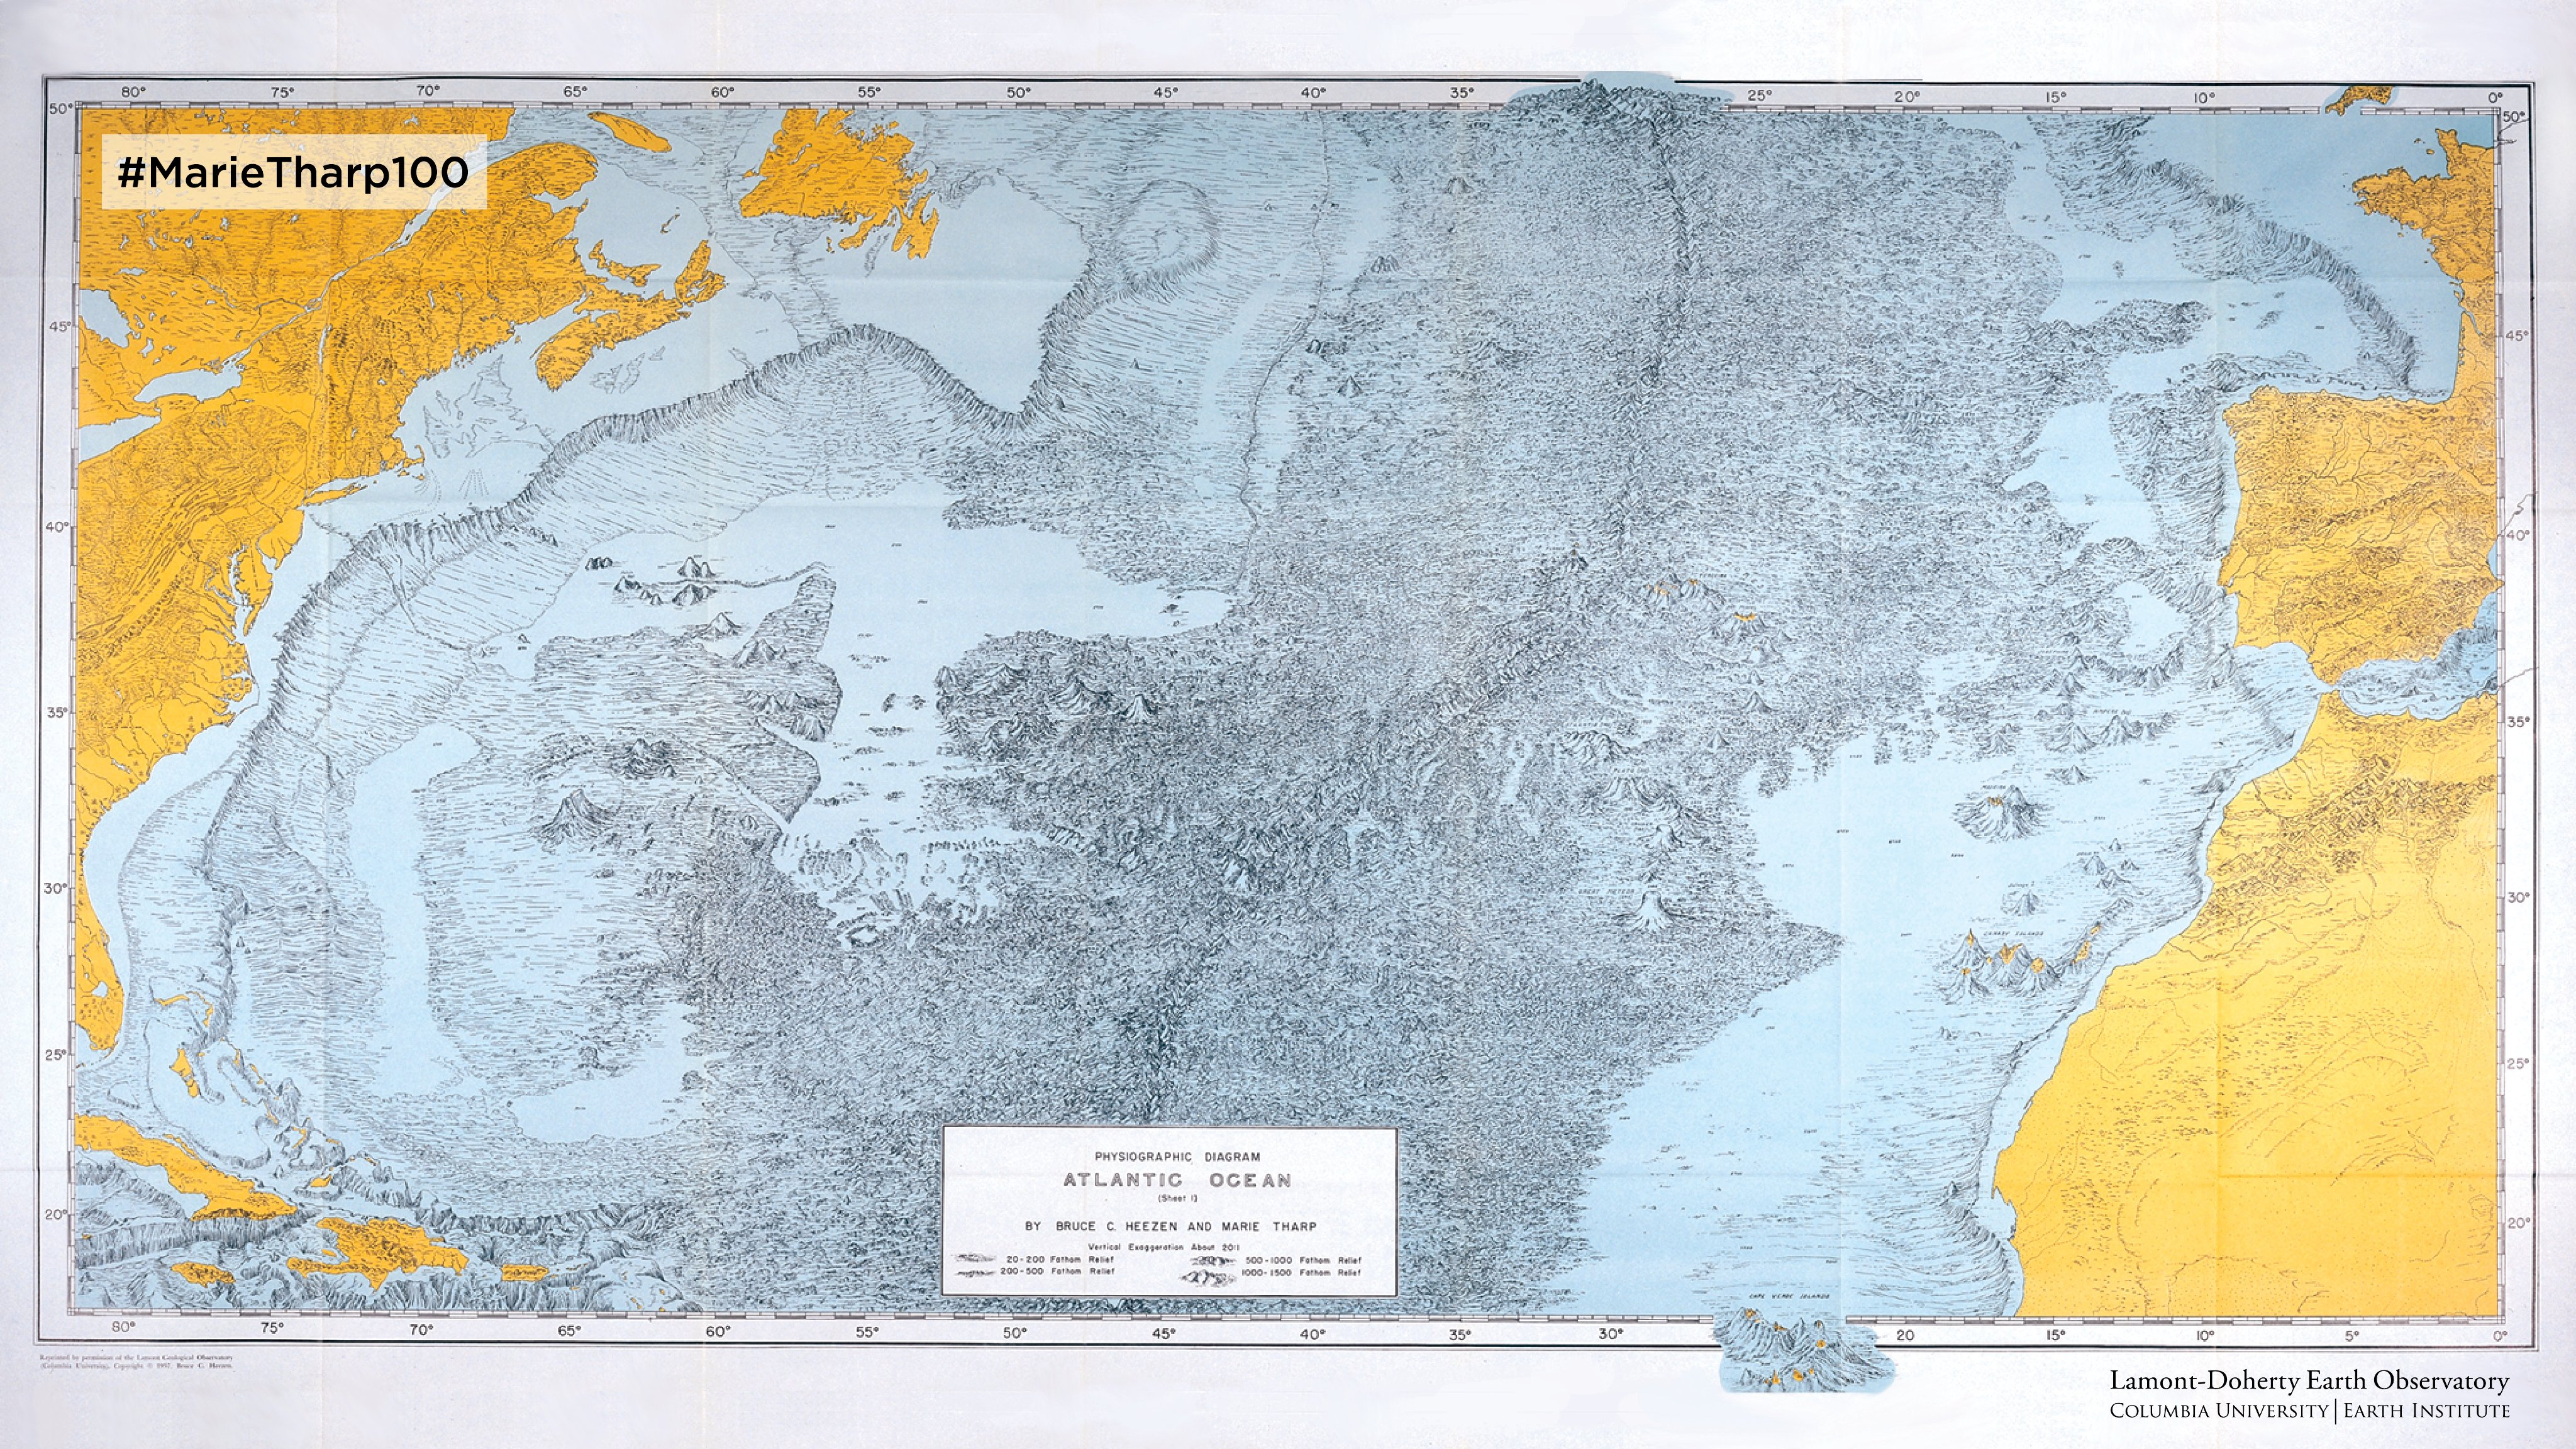 Before Tharp and Heezen's 1957 map of the Atlantic seafloor, scientists assumed the bottom of the ocean was mostly flat and featureless. Reproduced with permission from Marie Tharp Maps LLC and Lamont-Doherty Earth Observatory.